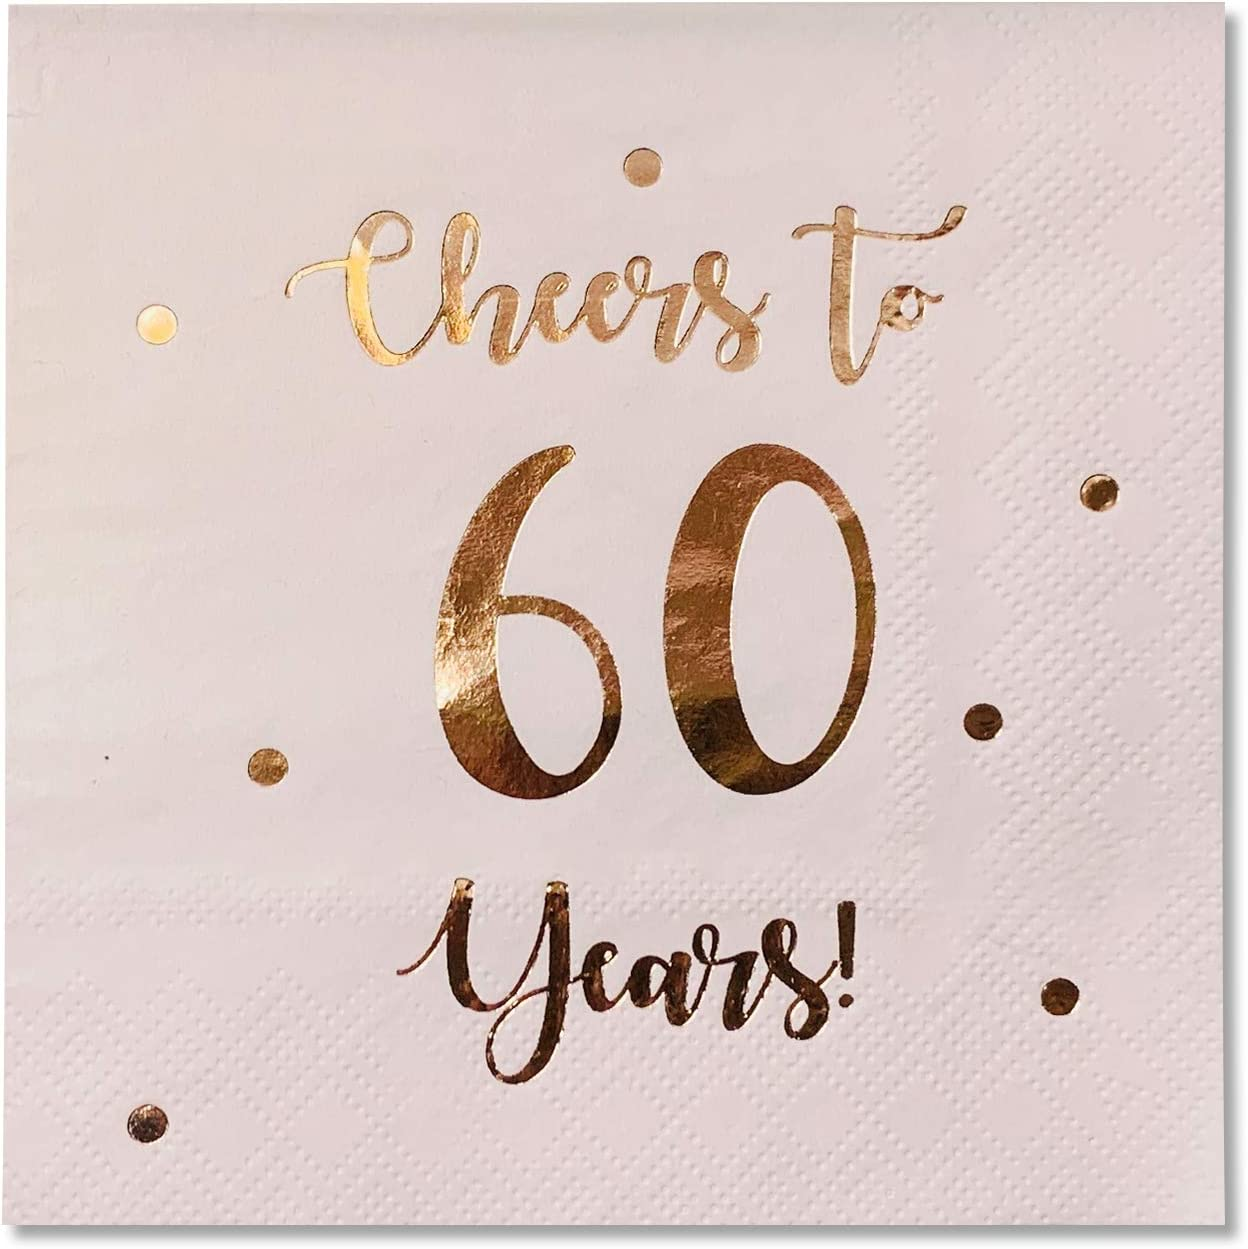 Cheers to 60 Years Cocktail Napkins | Happy 60th Birthday Decorations for Men and Women and Wedding Anniversary Party Decorations | 50-Pack 3-Ply Napkins | 5 x 5 inch folded (Pink)